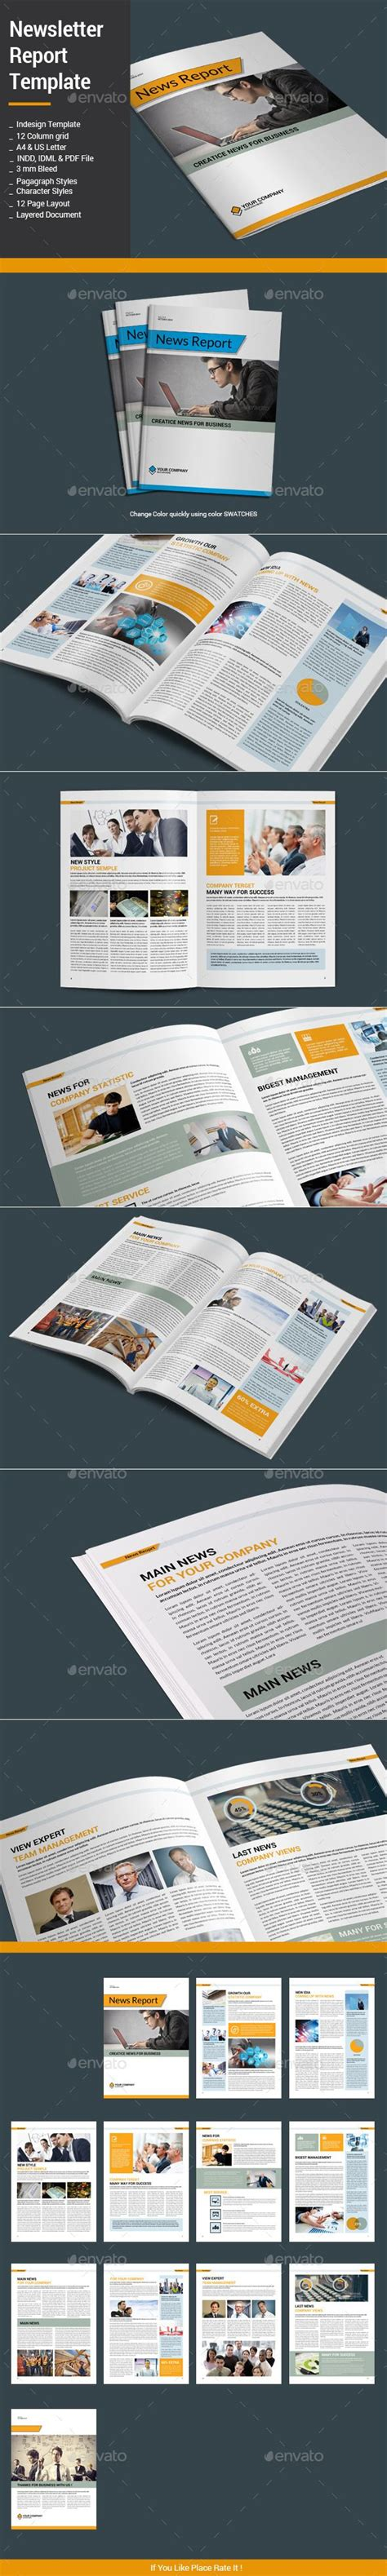 newspaper layout indd newsletter report template newsletter templates and